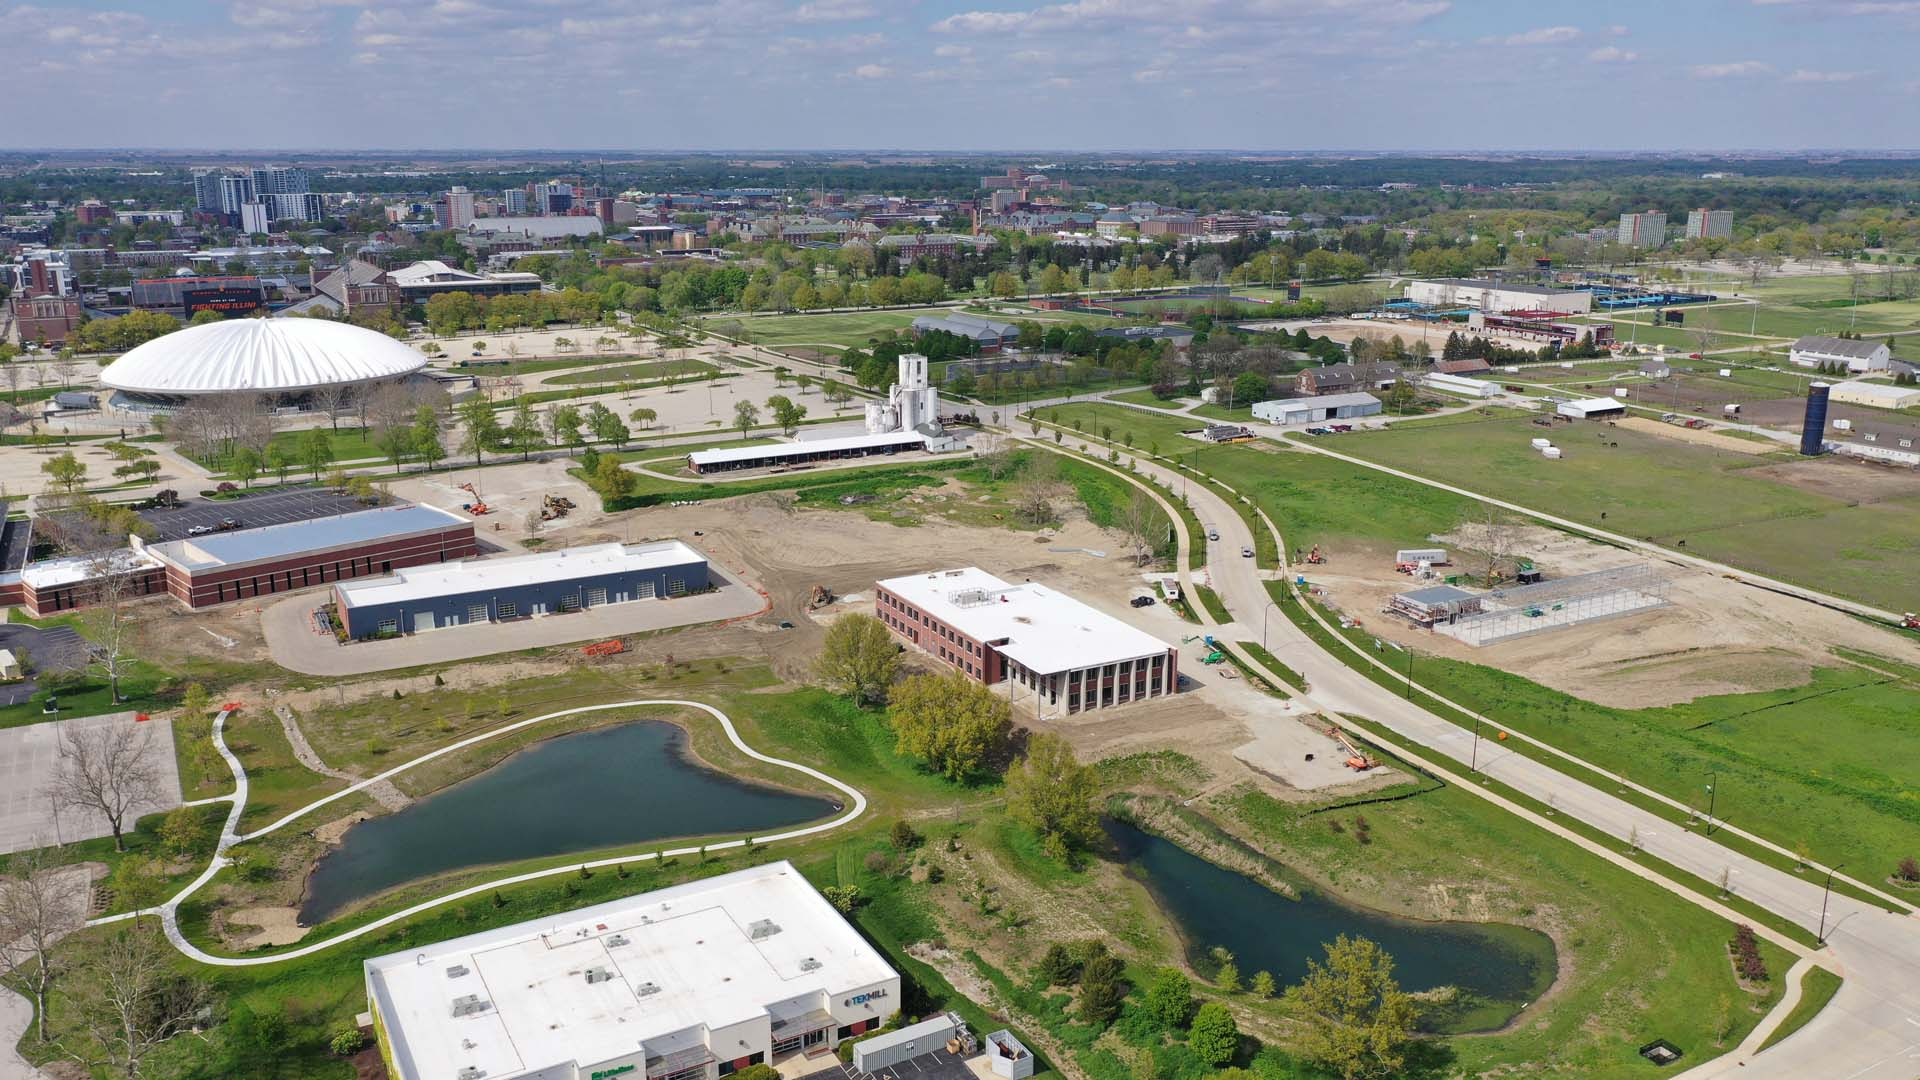 Bird's-eye View of Northeast of Research Park